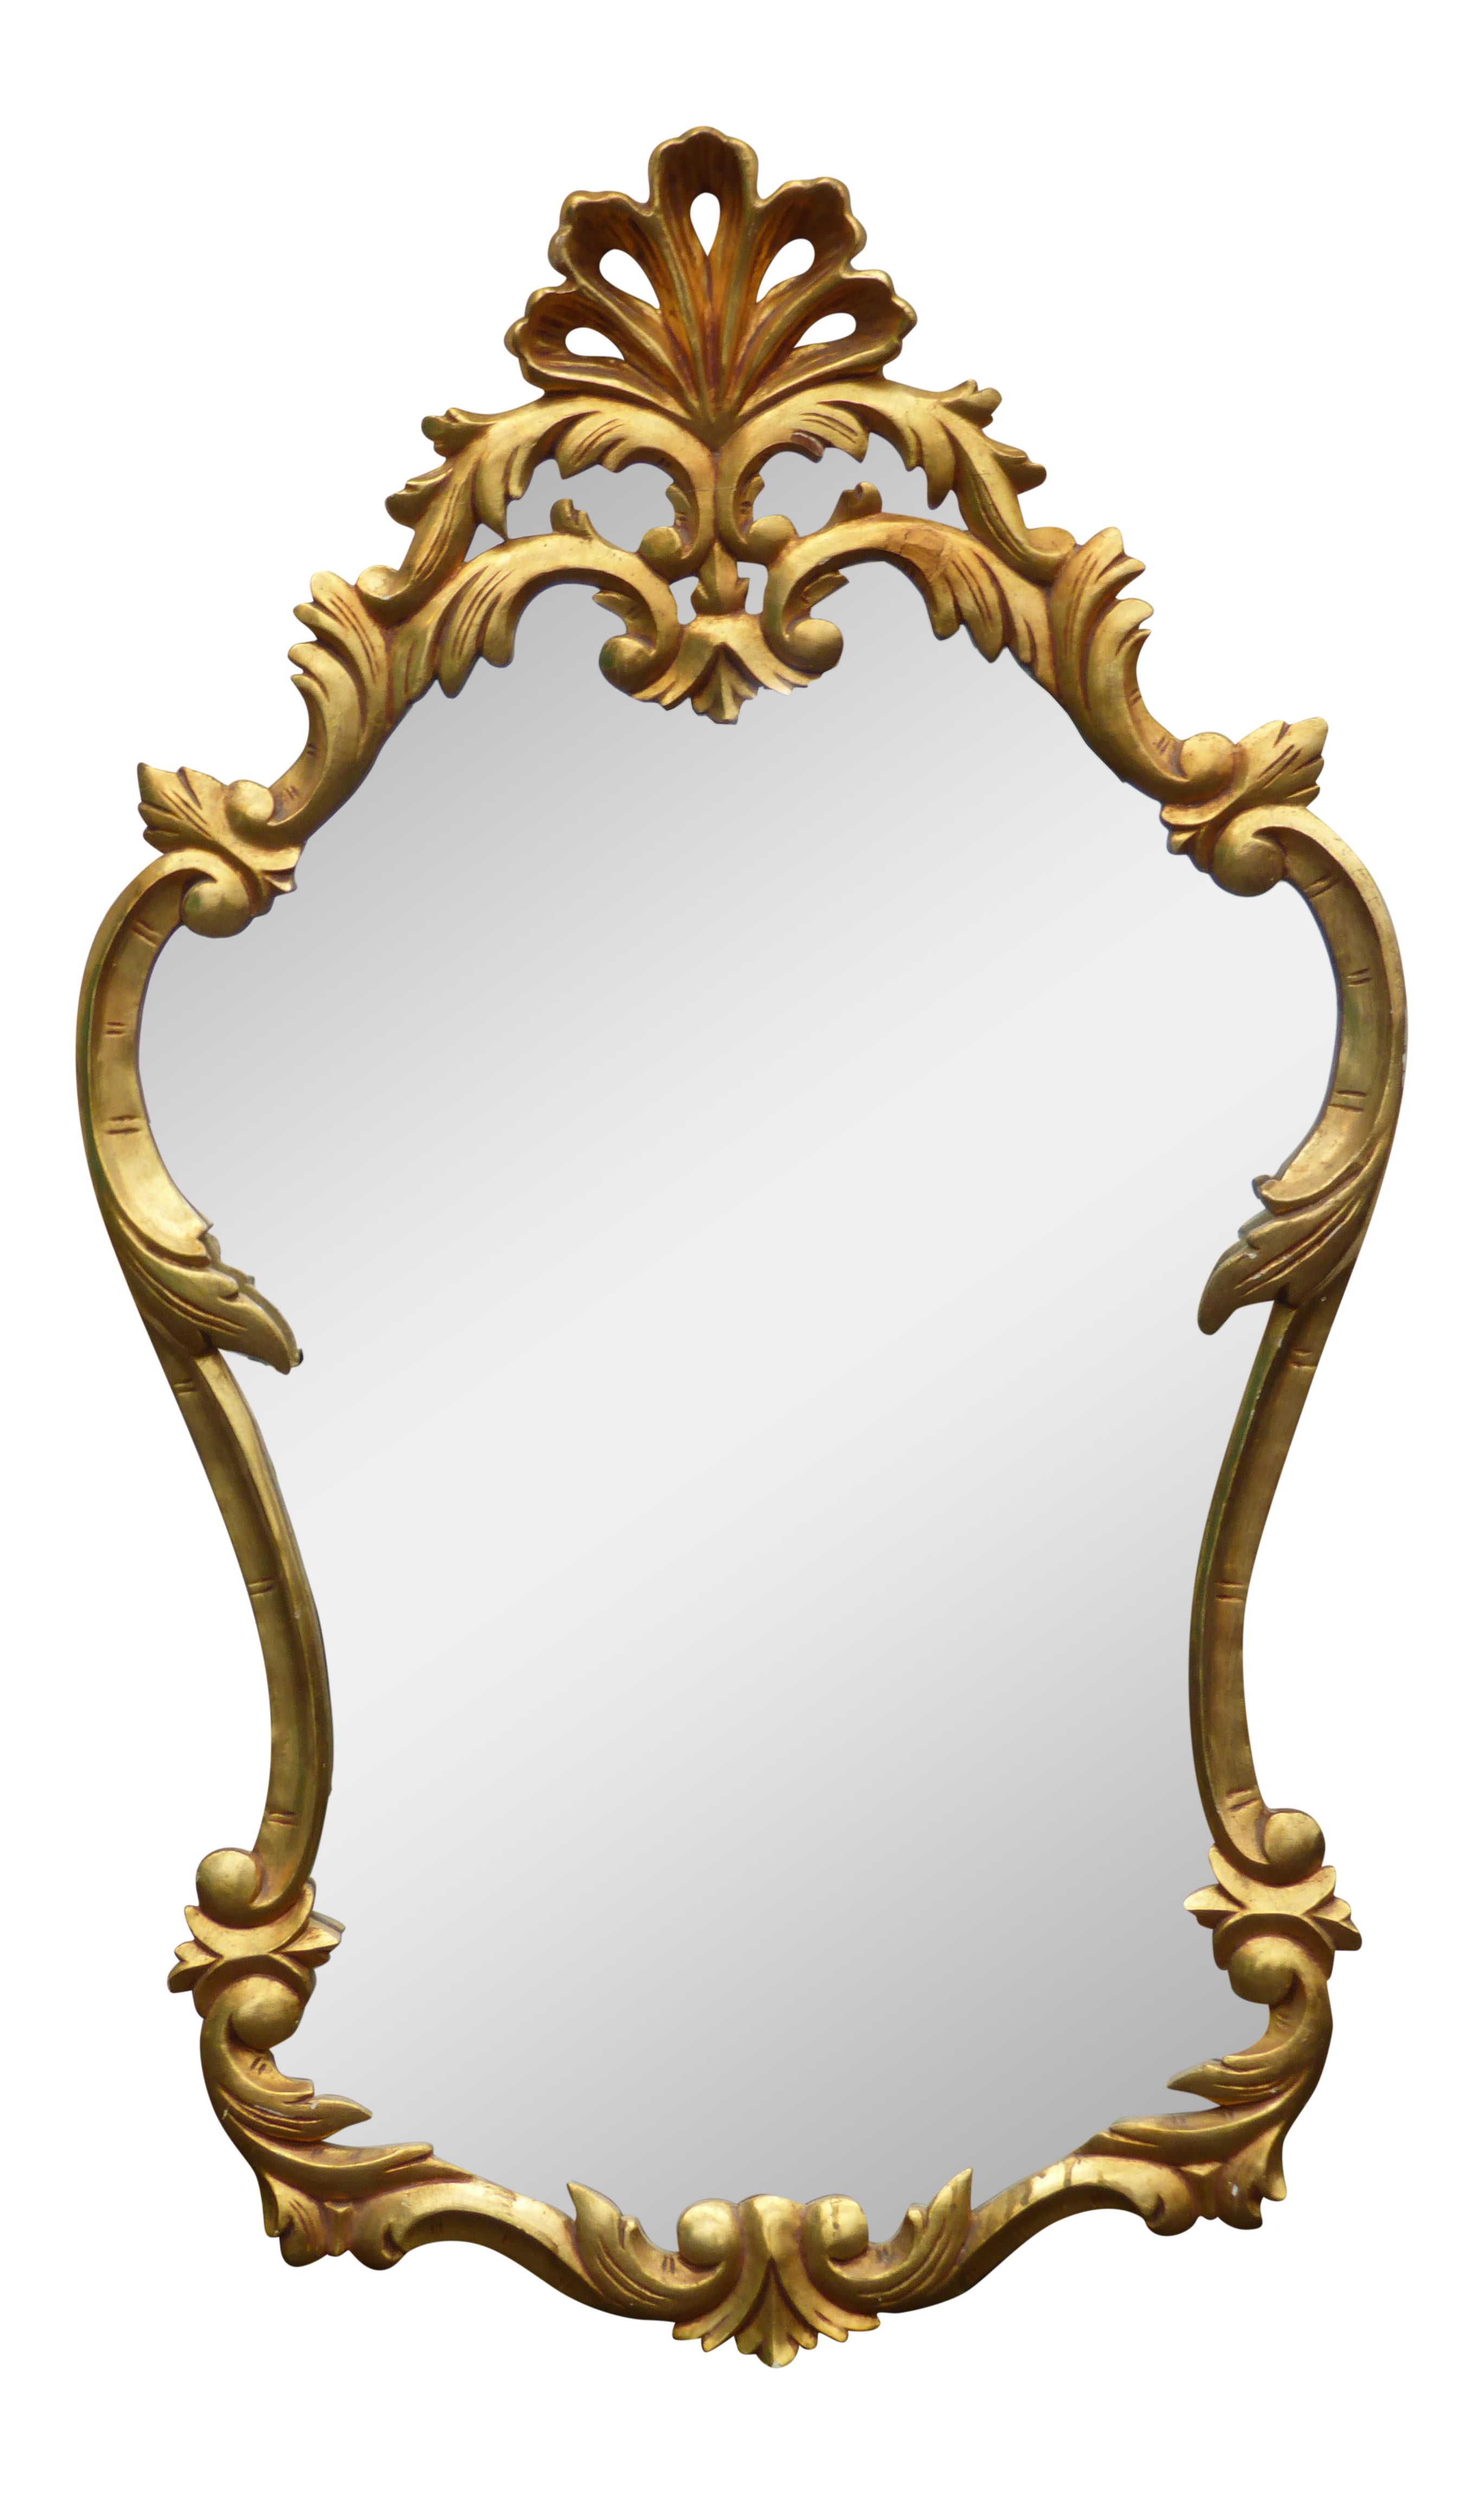 Vintage mirror png. Rococo french provincial gilt